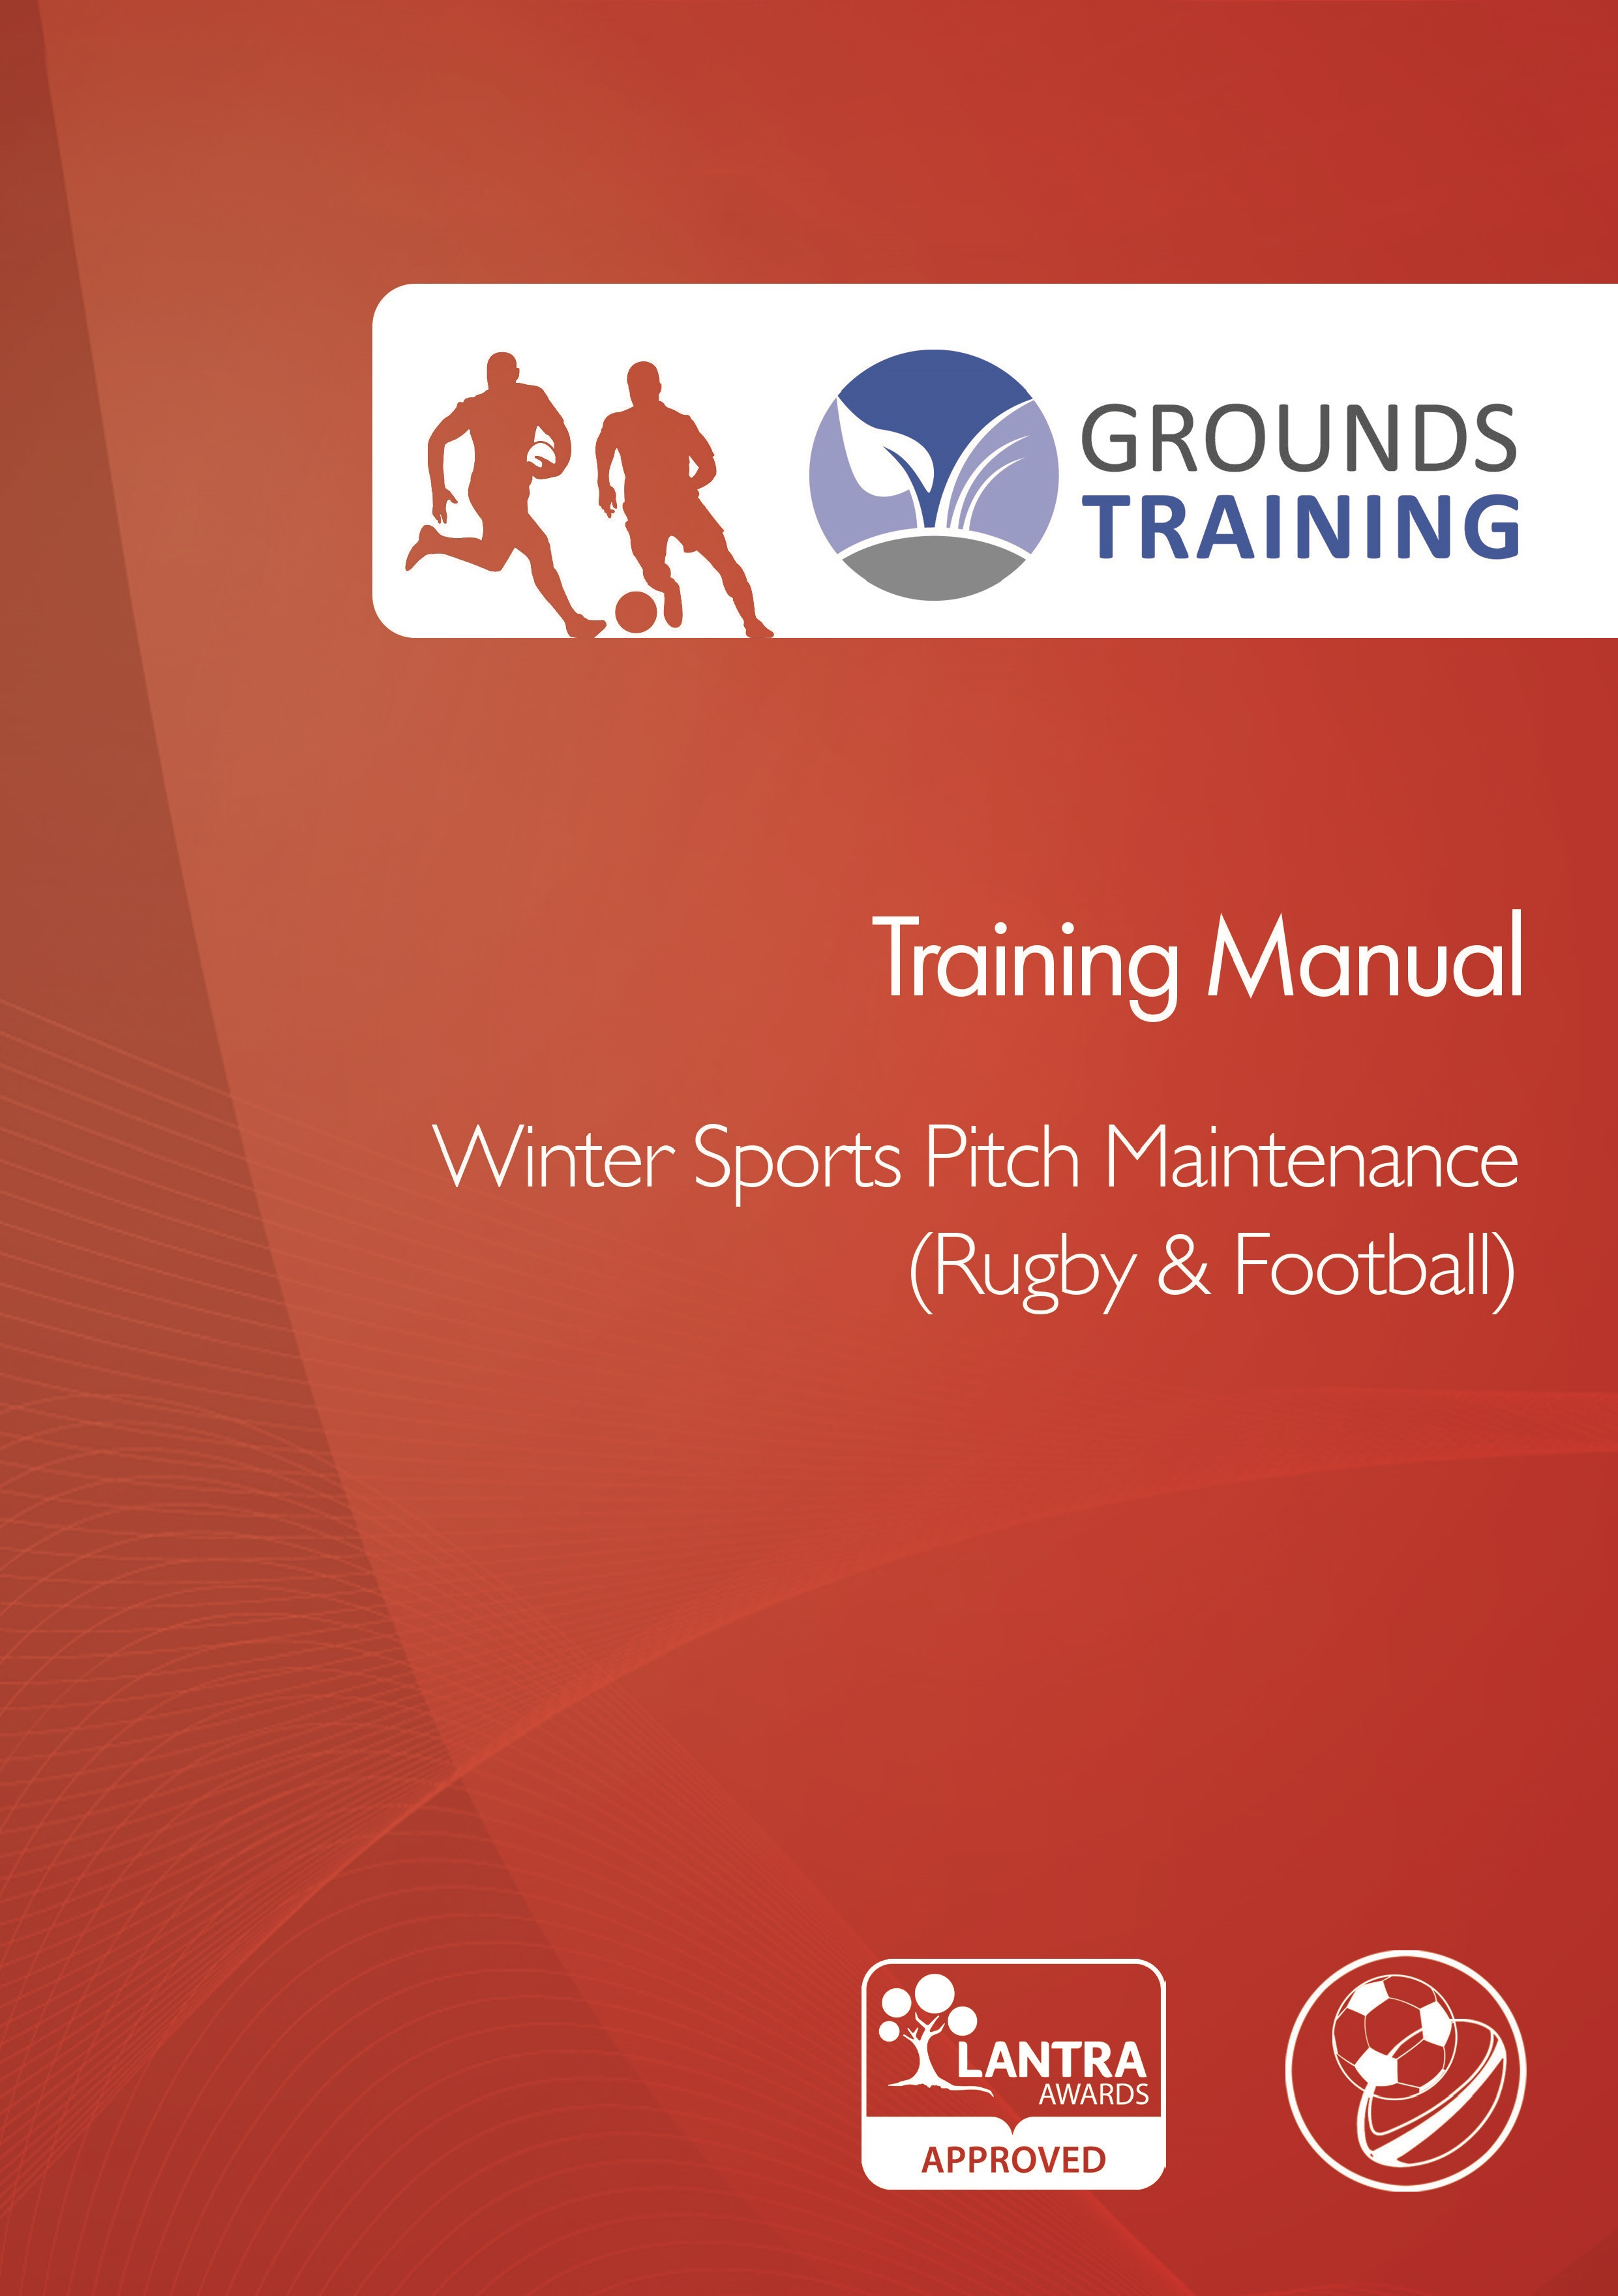 Winter Sports Pitch Maintenance (Rugby & Football) Training Manual